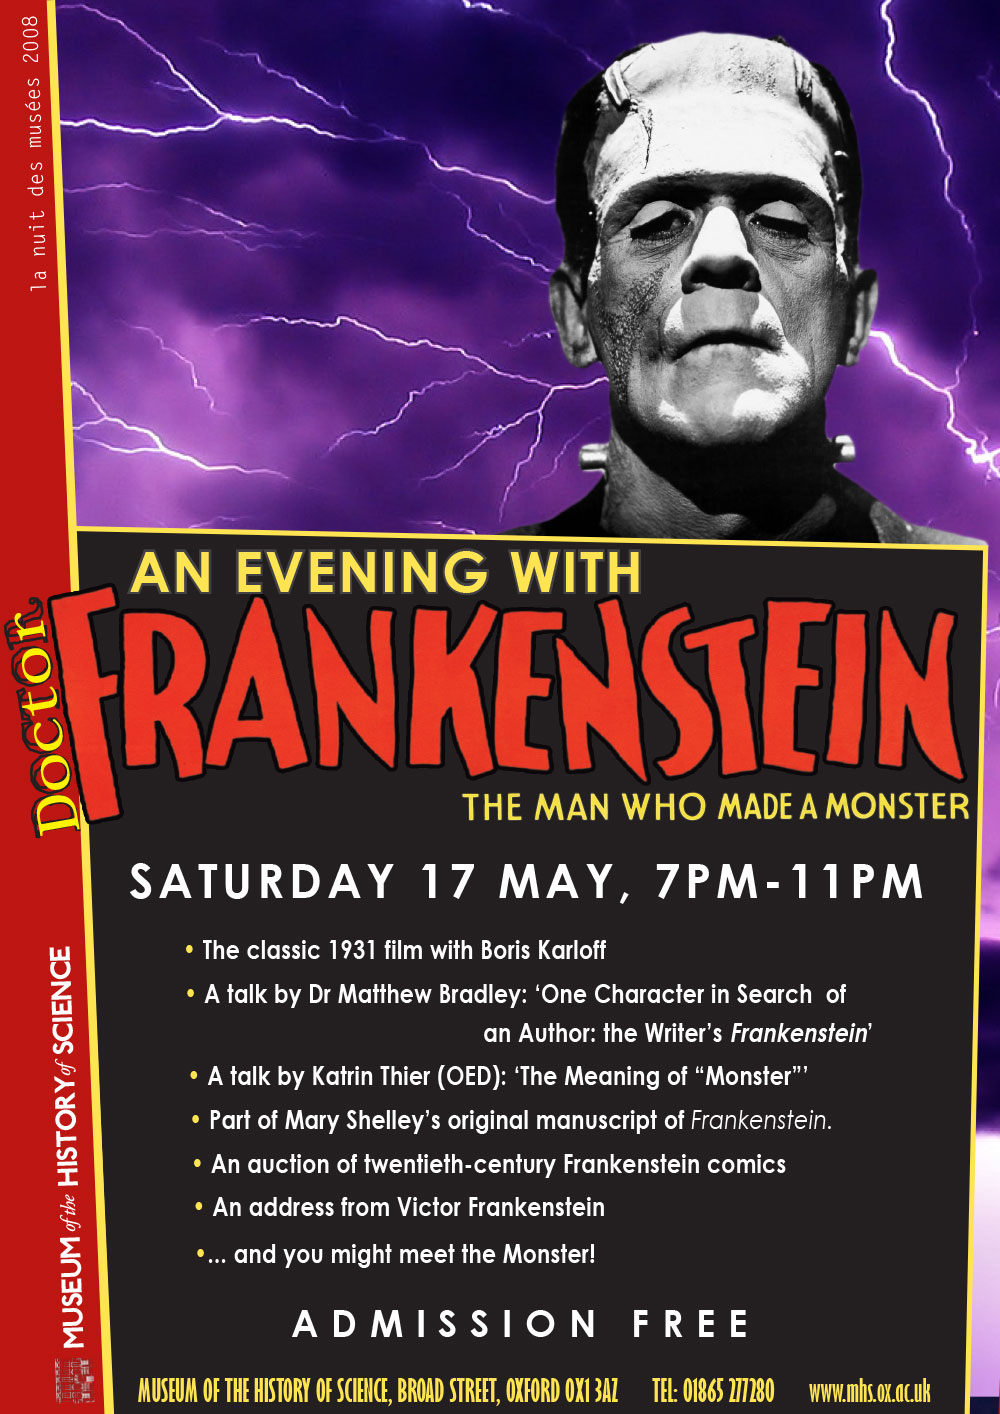 An Evening with Dr Frankenstein